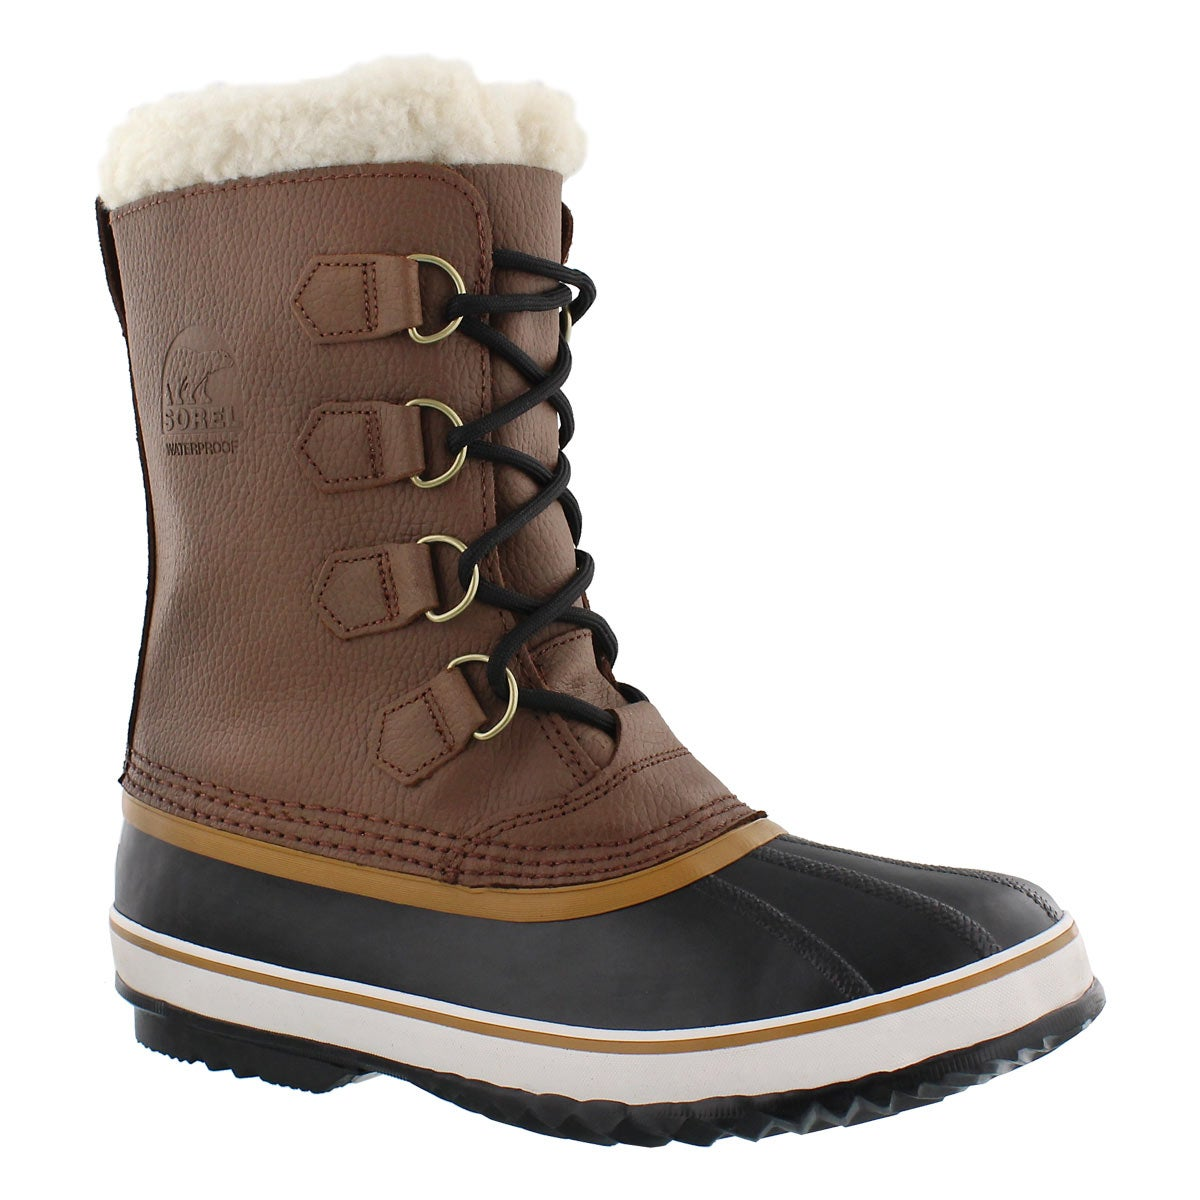 Mns 1964 Pac T hickory winter boot